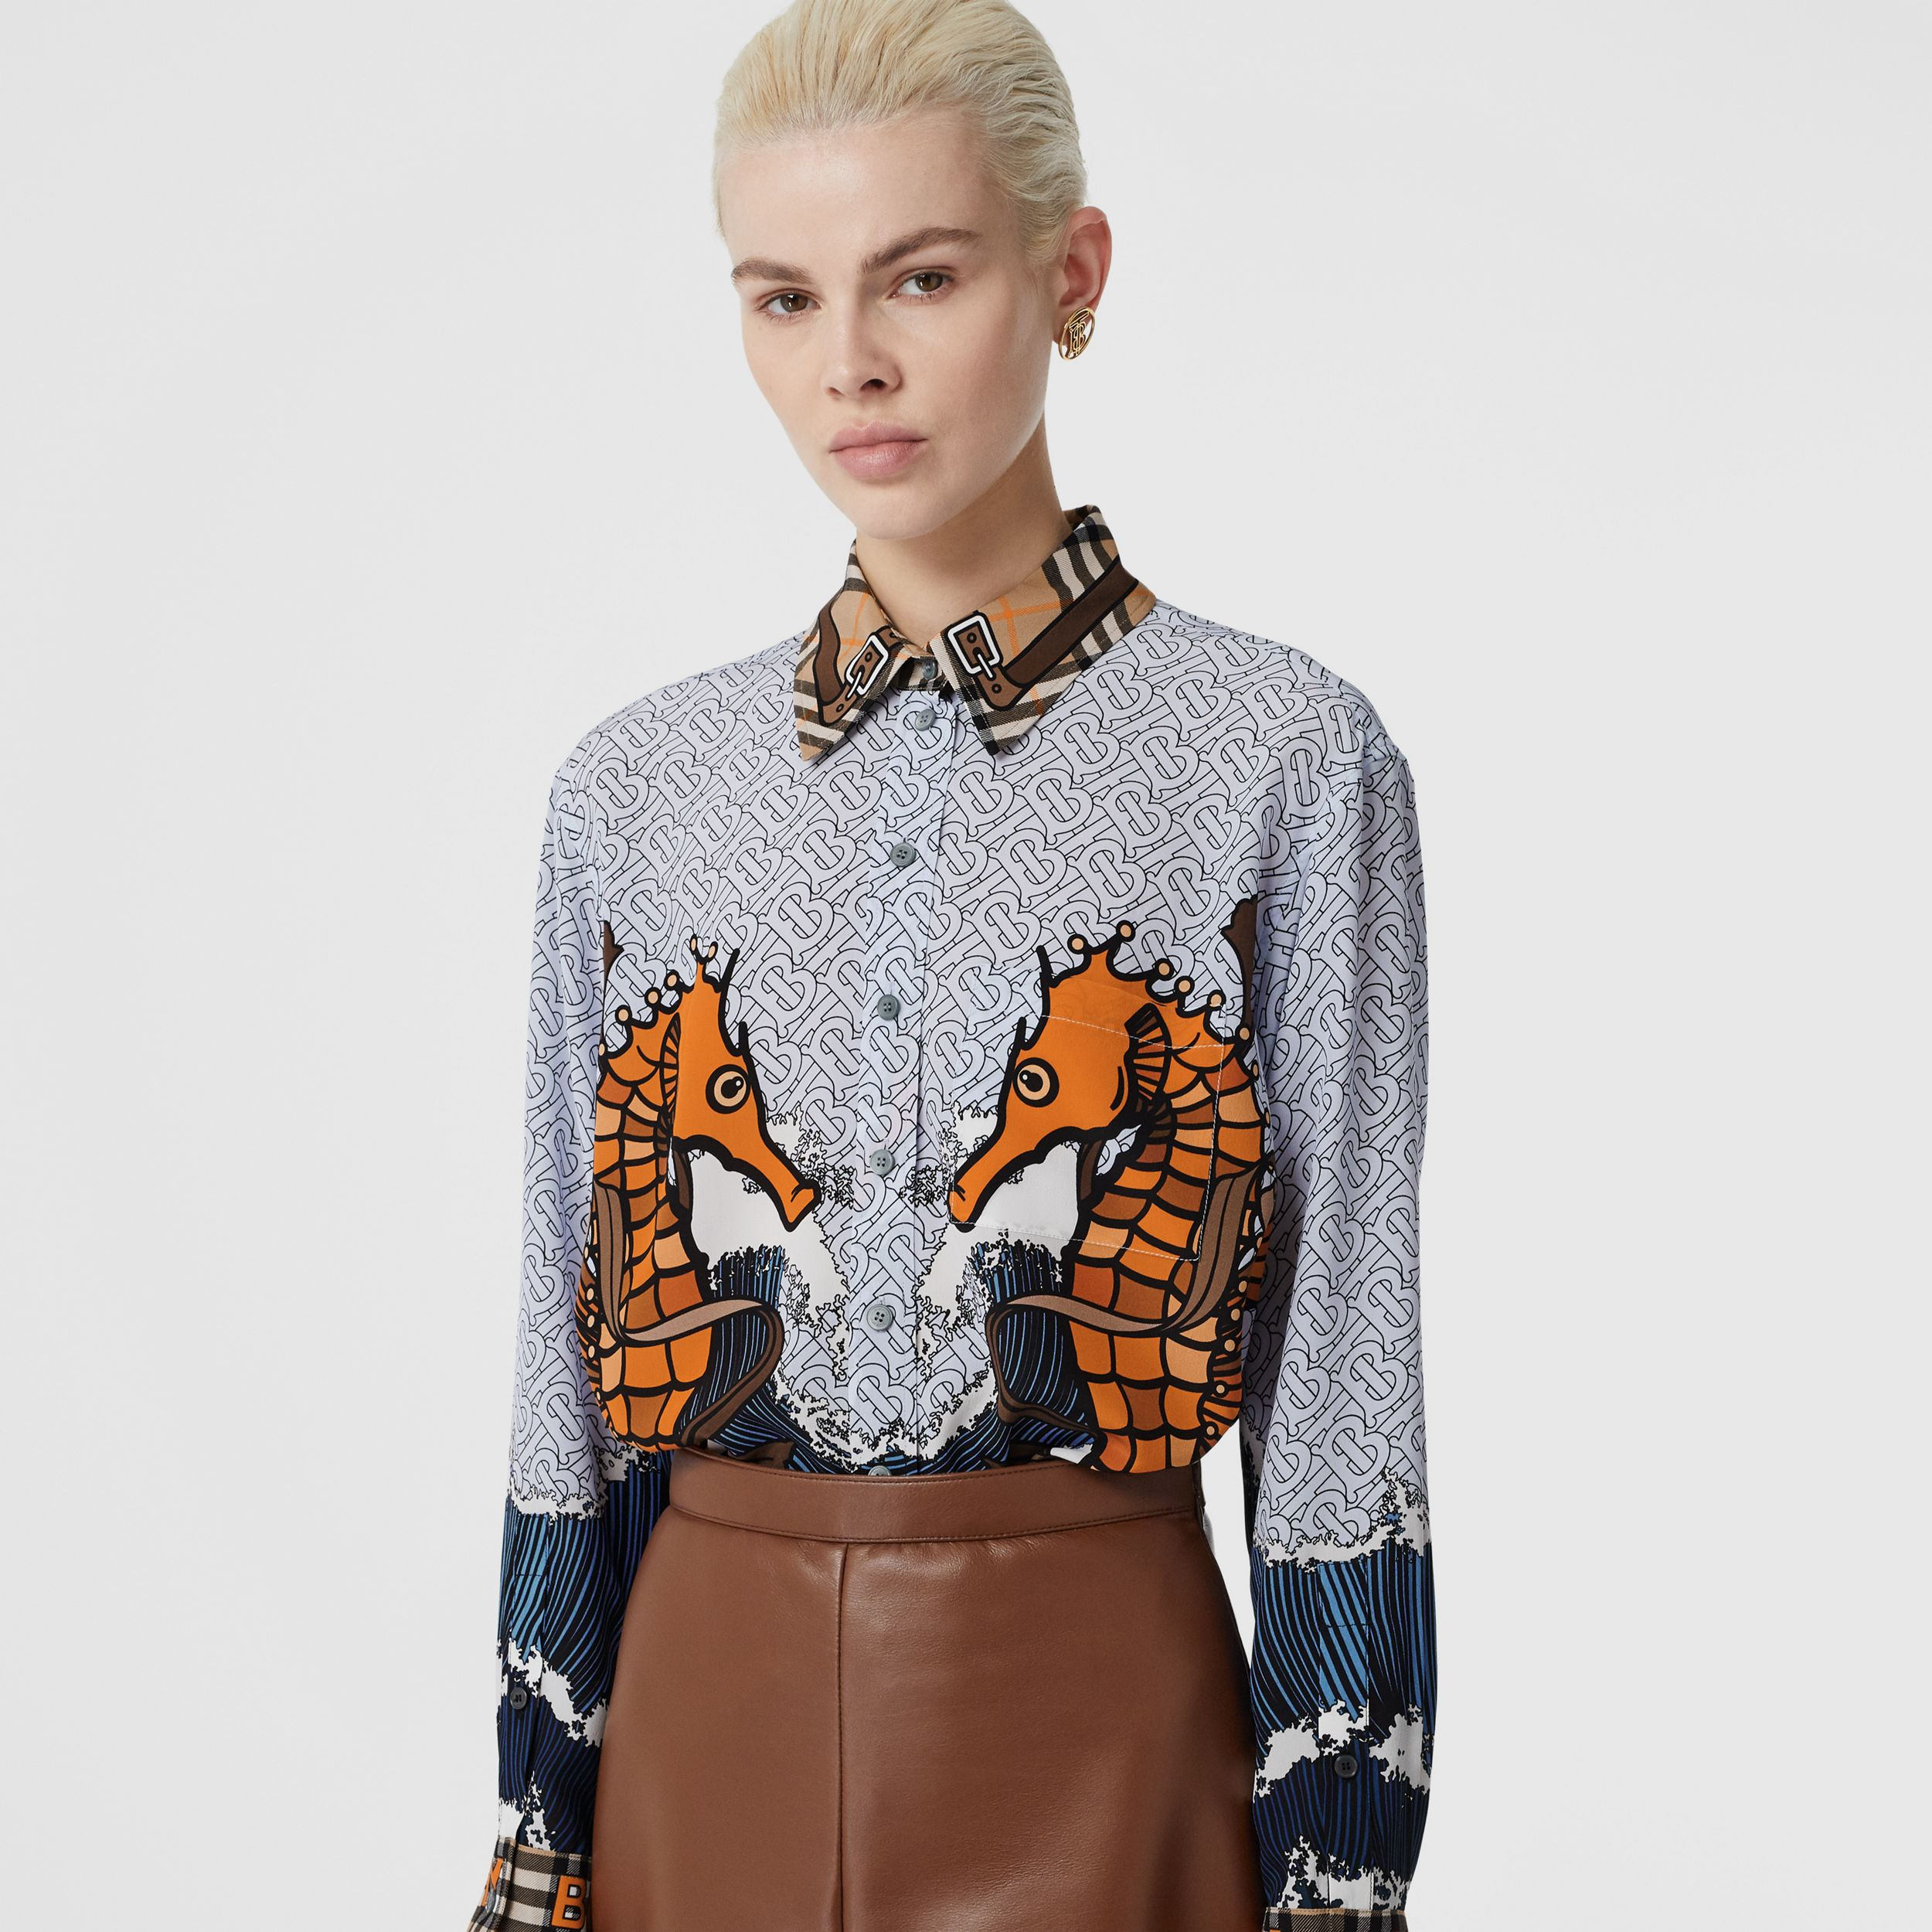 Seahorse and Monogram Print Silk Shirt in Baby Blue - Women | Burberry - 2